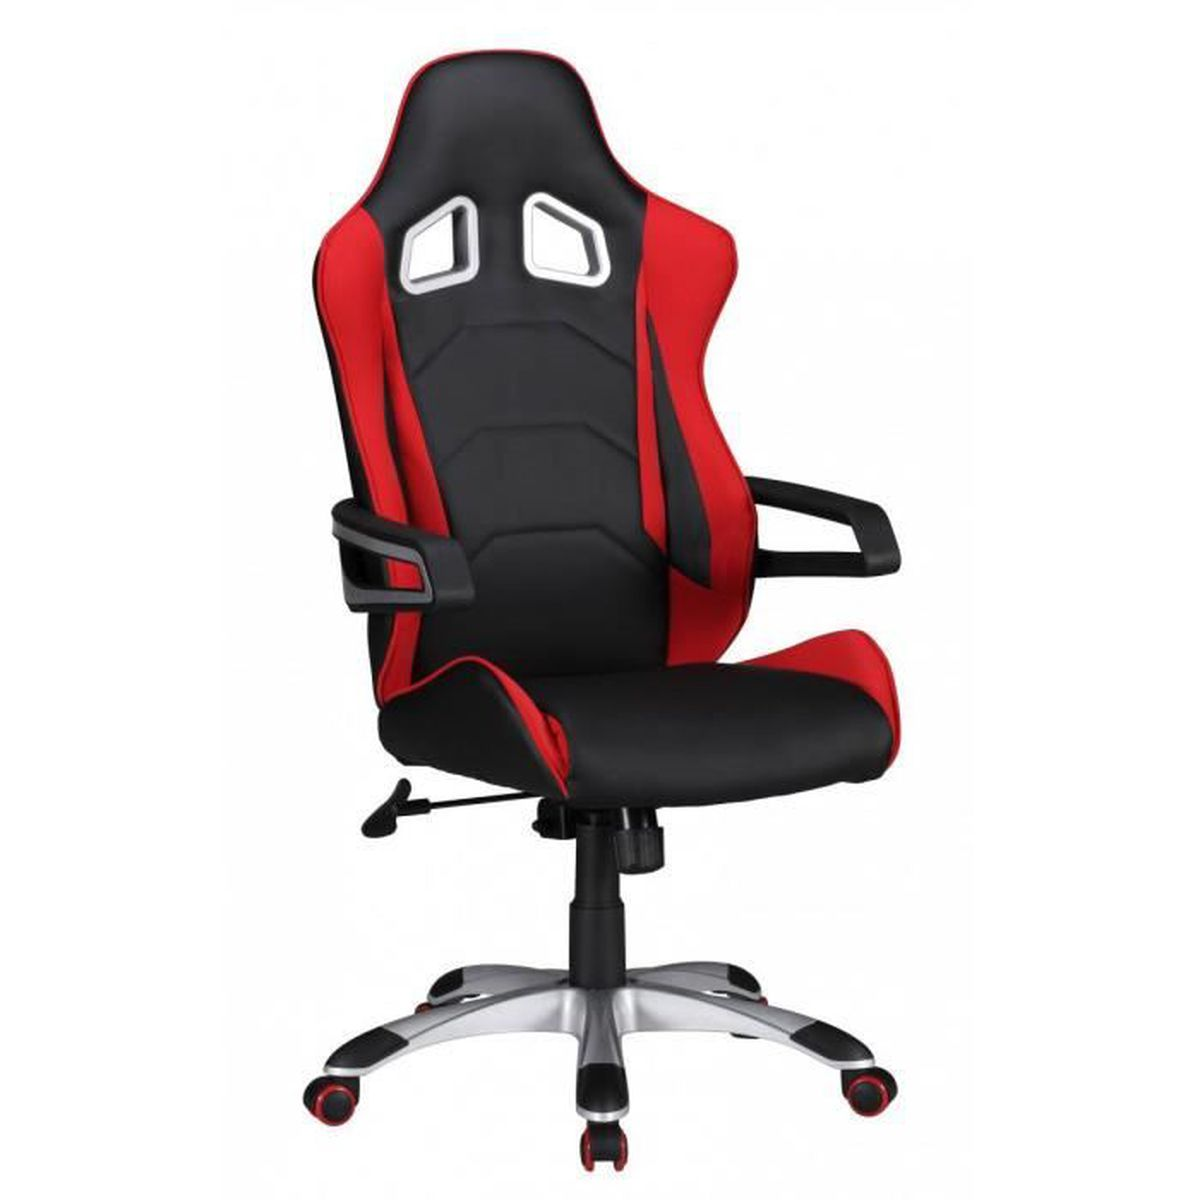 chaise de bureau speed red racing chefsessel racer chaise. Black Bedroom Furniture Sets. Home Design Ideas